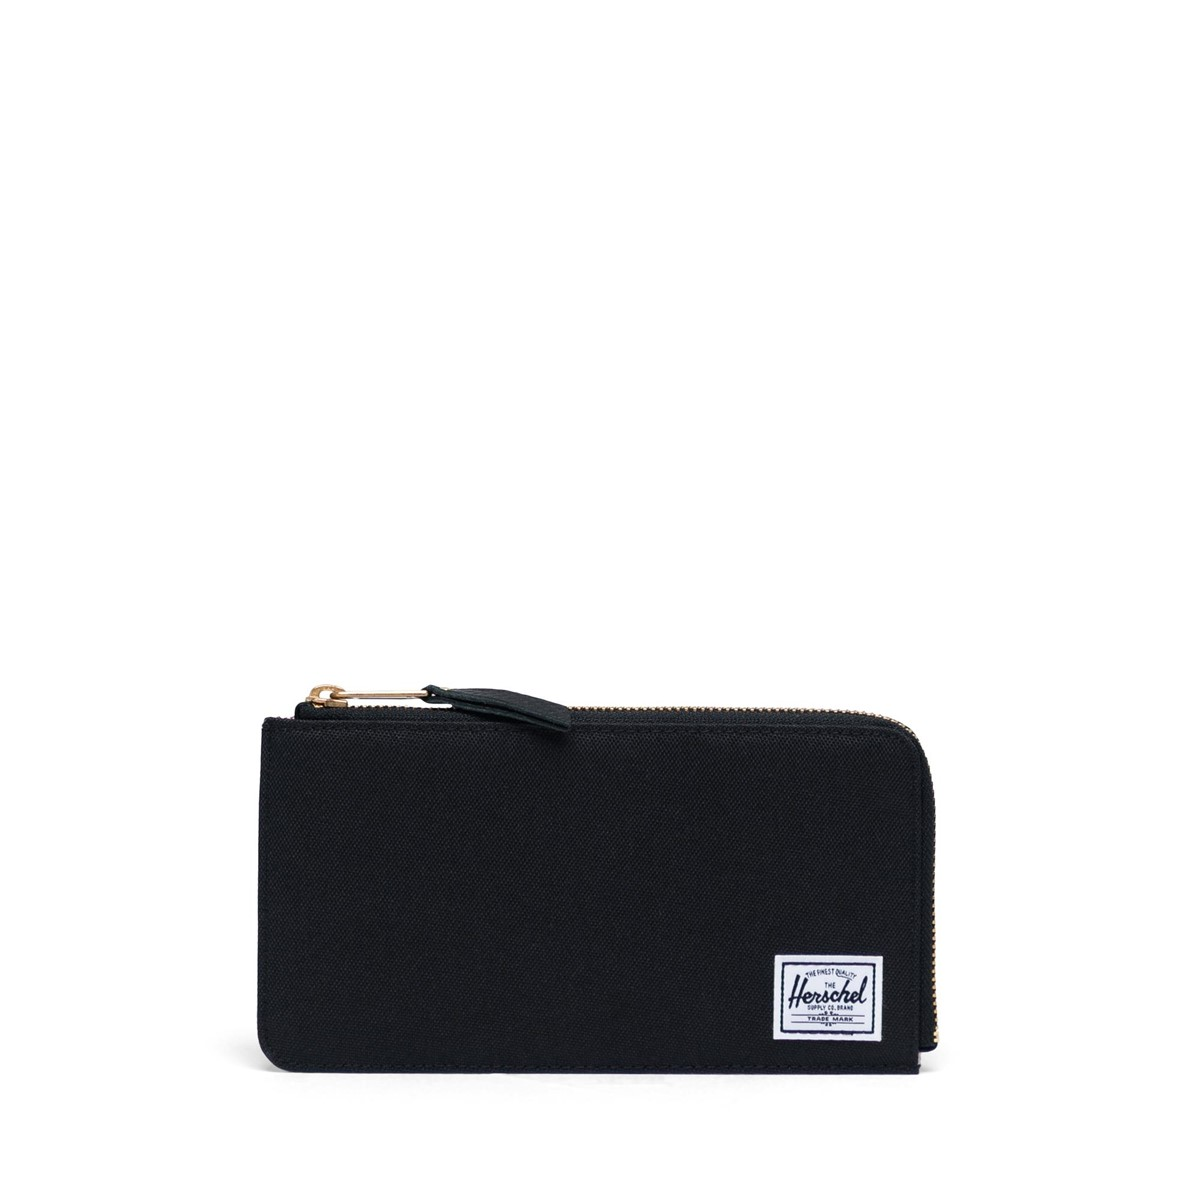 Jack Large Wallet in Black